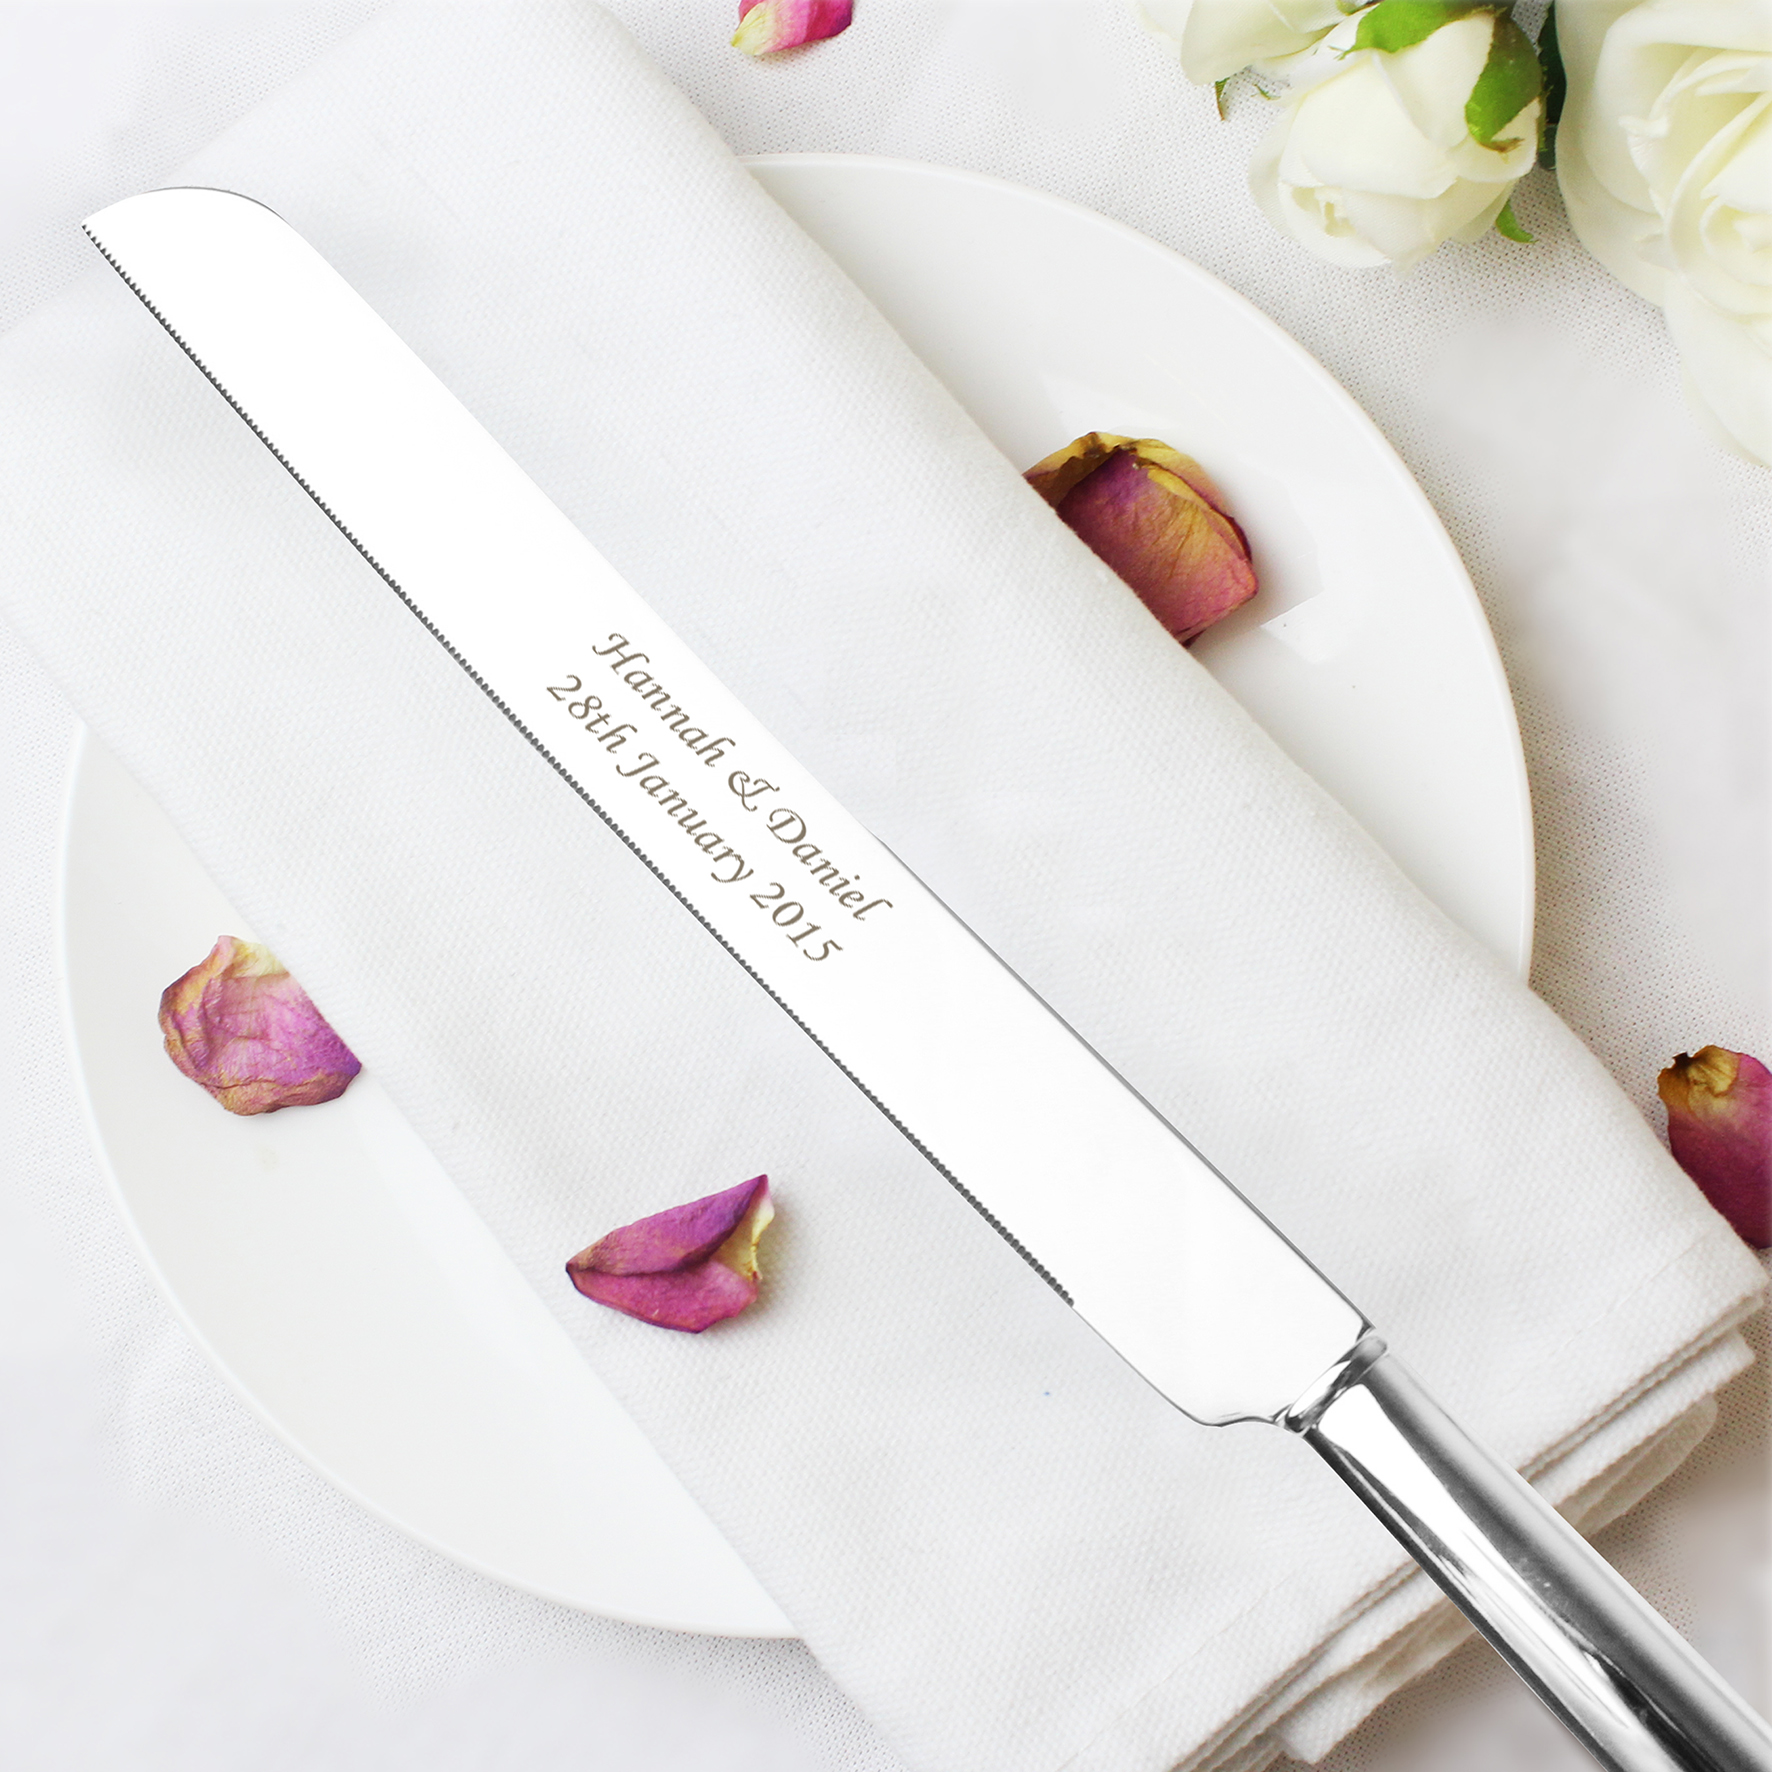 Engraved Heart Cake Knife